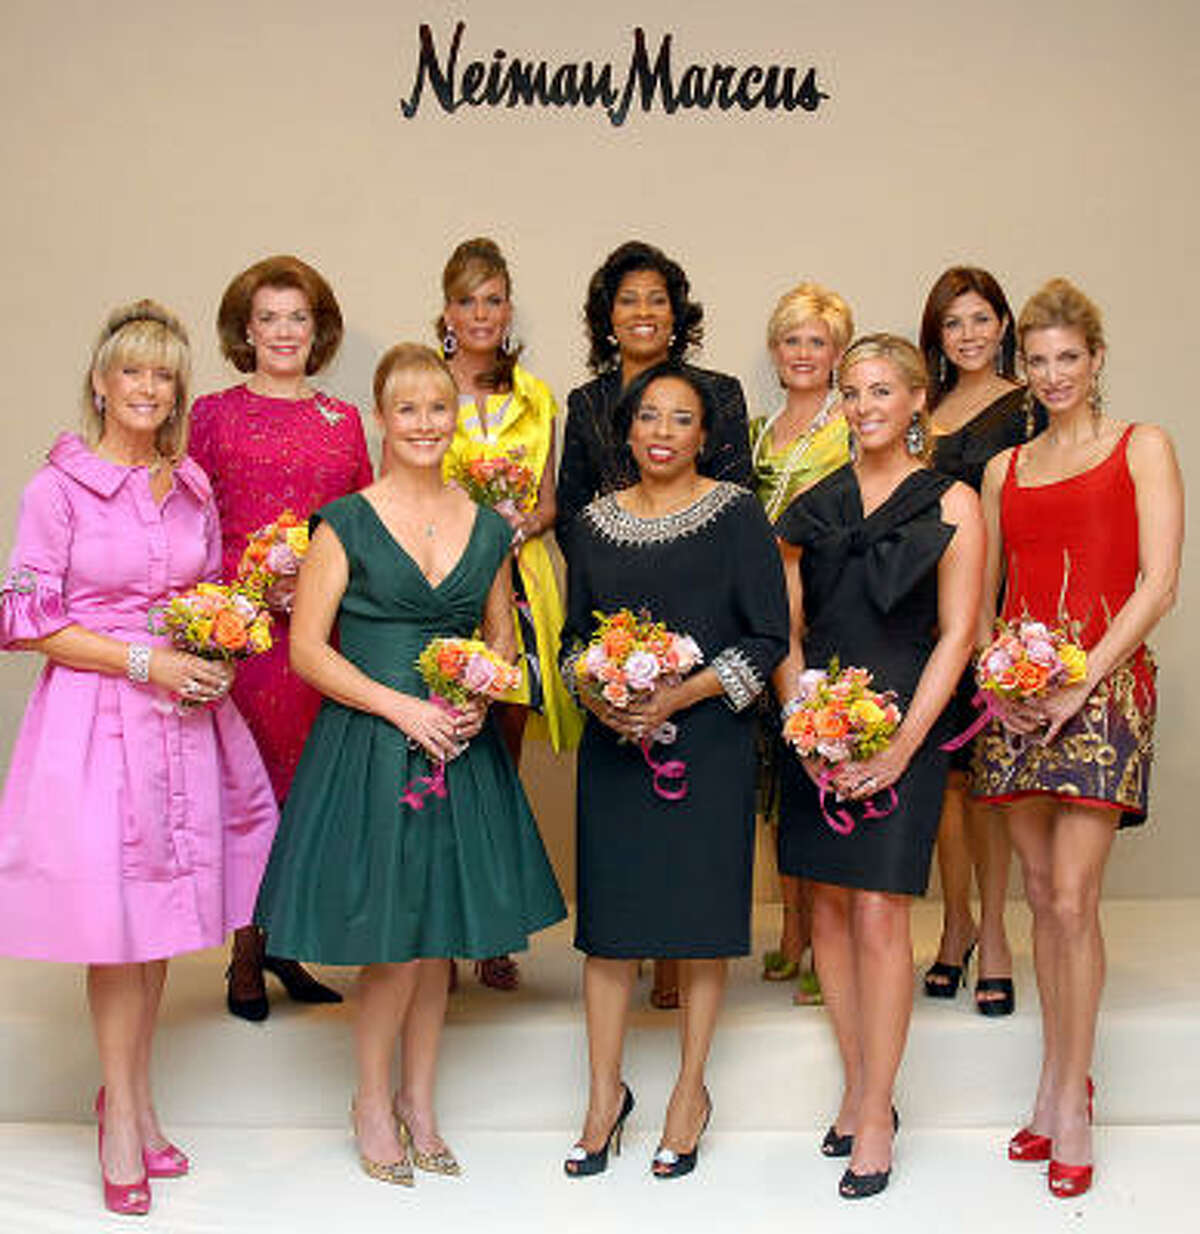 The Houston Chronicle's Best Dressed. Front row from left: Sheridan Williams, Randa Williams, Phyllis Williams, Kristen Nix and Melissa Mithoff. Back row from left: Jeanie Kilroy, Debra Grierson, Deidra Fontaine, Kelli Blanton and Ericka Bagwell.